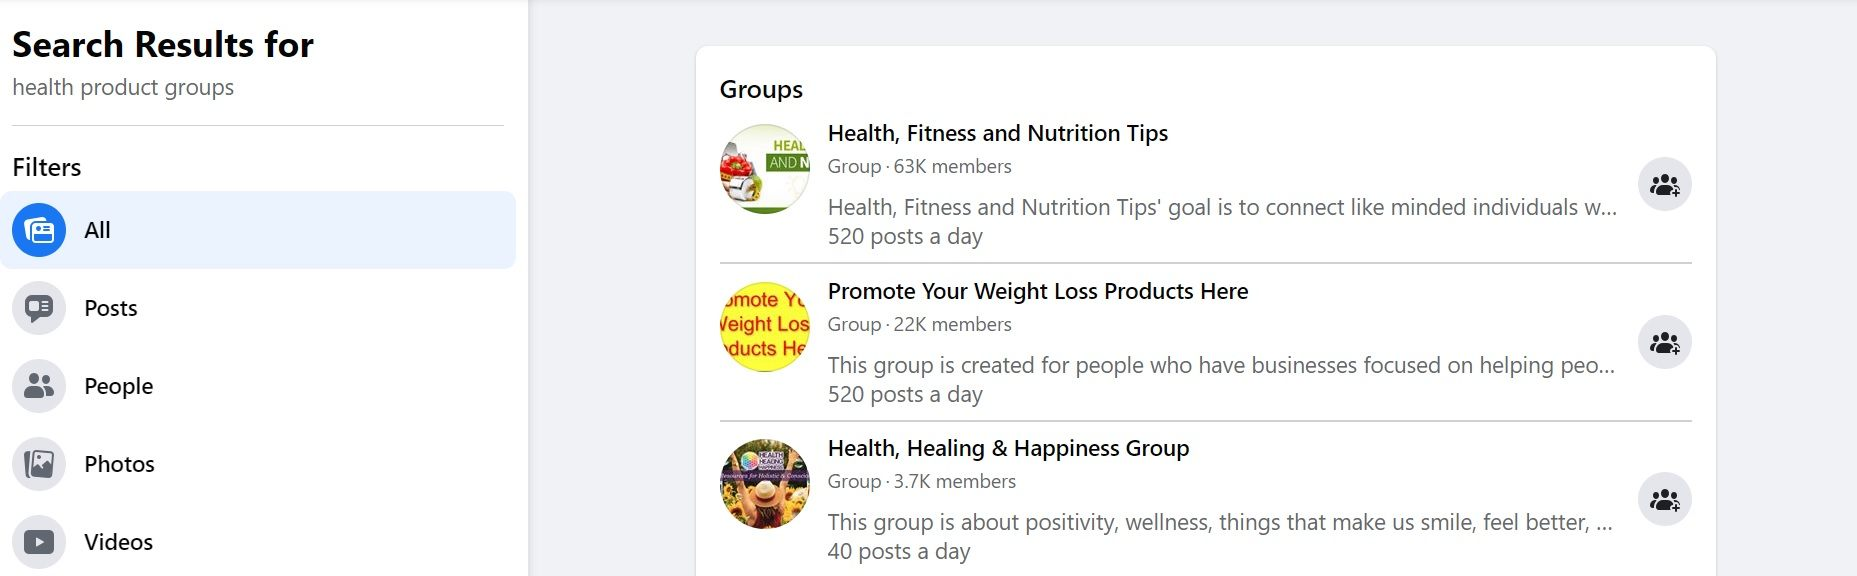 Health Products Groups - Facebook Search